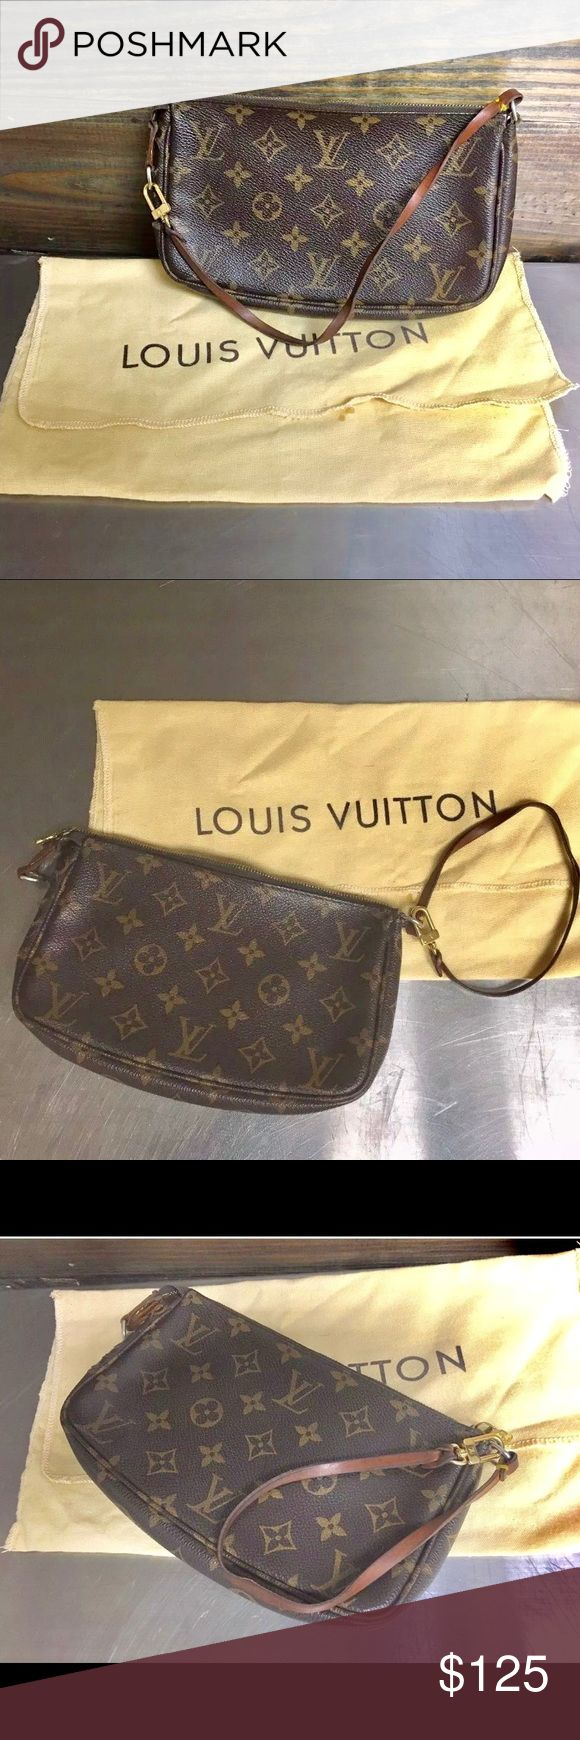 Louis Vuitton Monogram Pochette With Dust Bag Or eowned authentic Louis Vuitton Monogram Pochette with dust bag.   Inside: Minor make-up stain (see photo) comes from a smoke free home. It's in a clean overall condition.  Exterior: tiny punctures (see photo), light scratches on the hardwares. Leather strap has a nice patina w/minor discolorations. Zipper runs smoothly! Louis Vuitton Bags Mini Bags